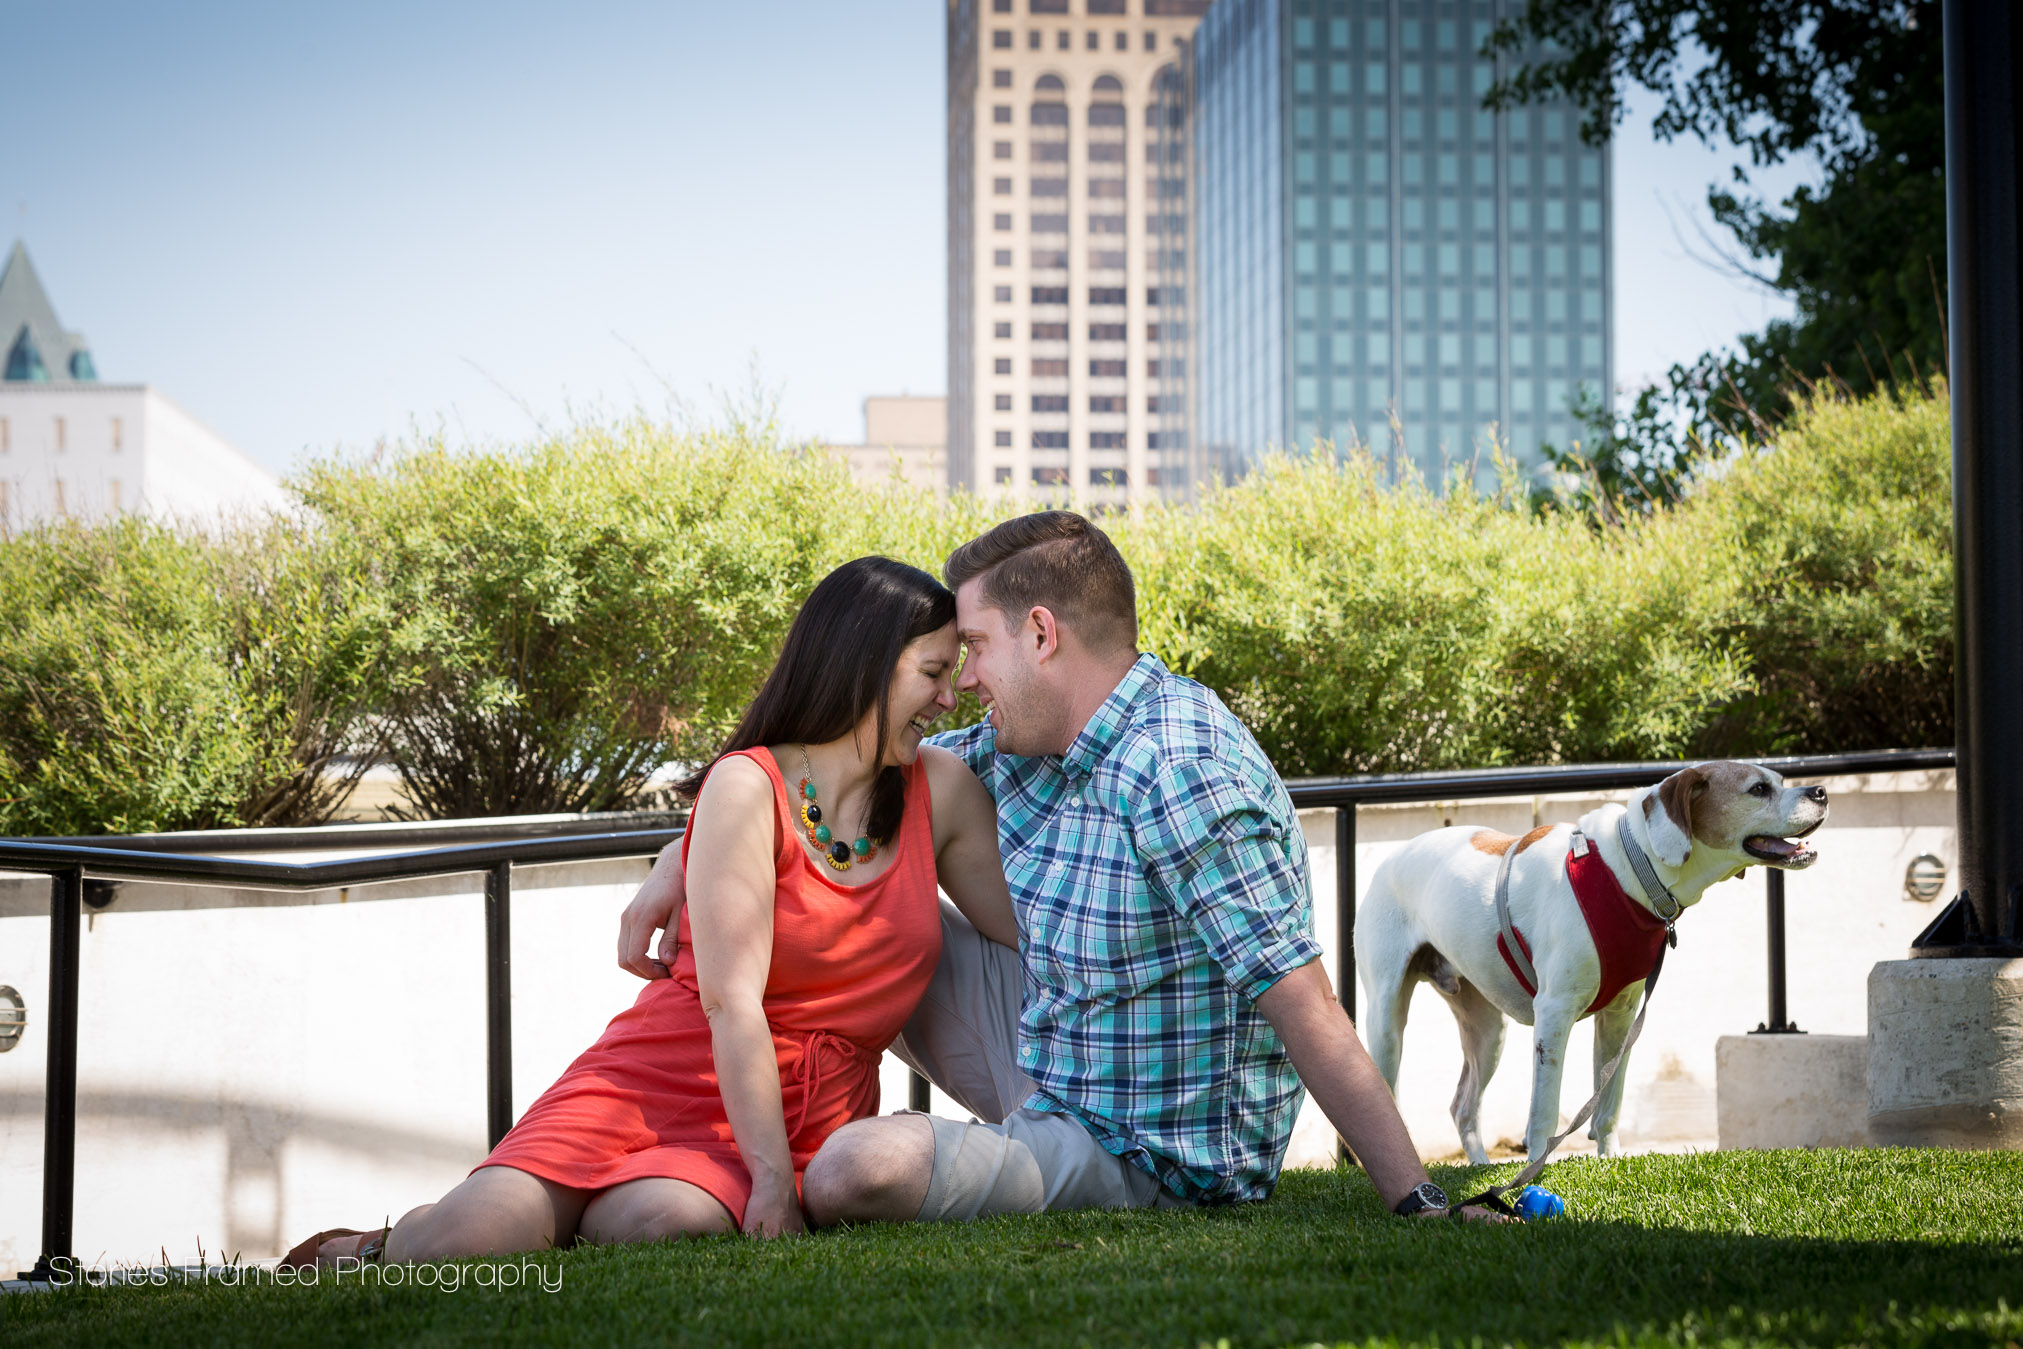 Meet Amanda, Dan, and their dog, Murphy and enjoy their family portraits.